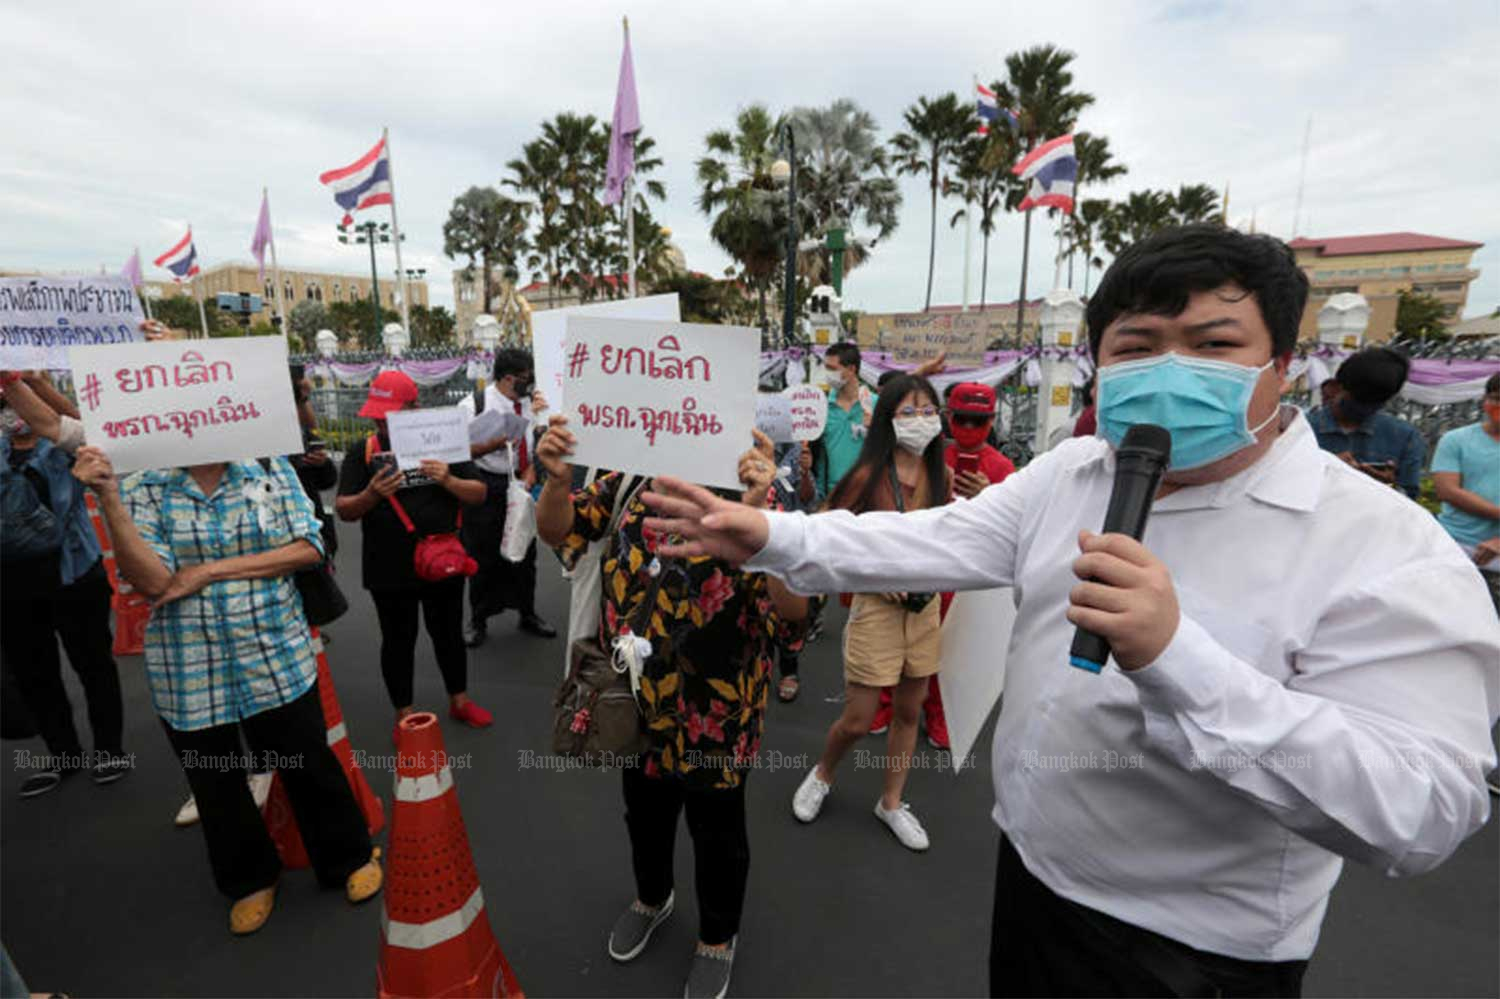 Members of the Democracy Restoration Group rally against the emergency decree outside Government House on June 18, 2020. The cabinet on Tuesday formally approved the extension of the emergency decree nationwide for another month, until July 31. (Photo by Chanat Katanyu)